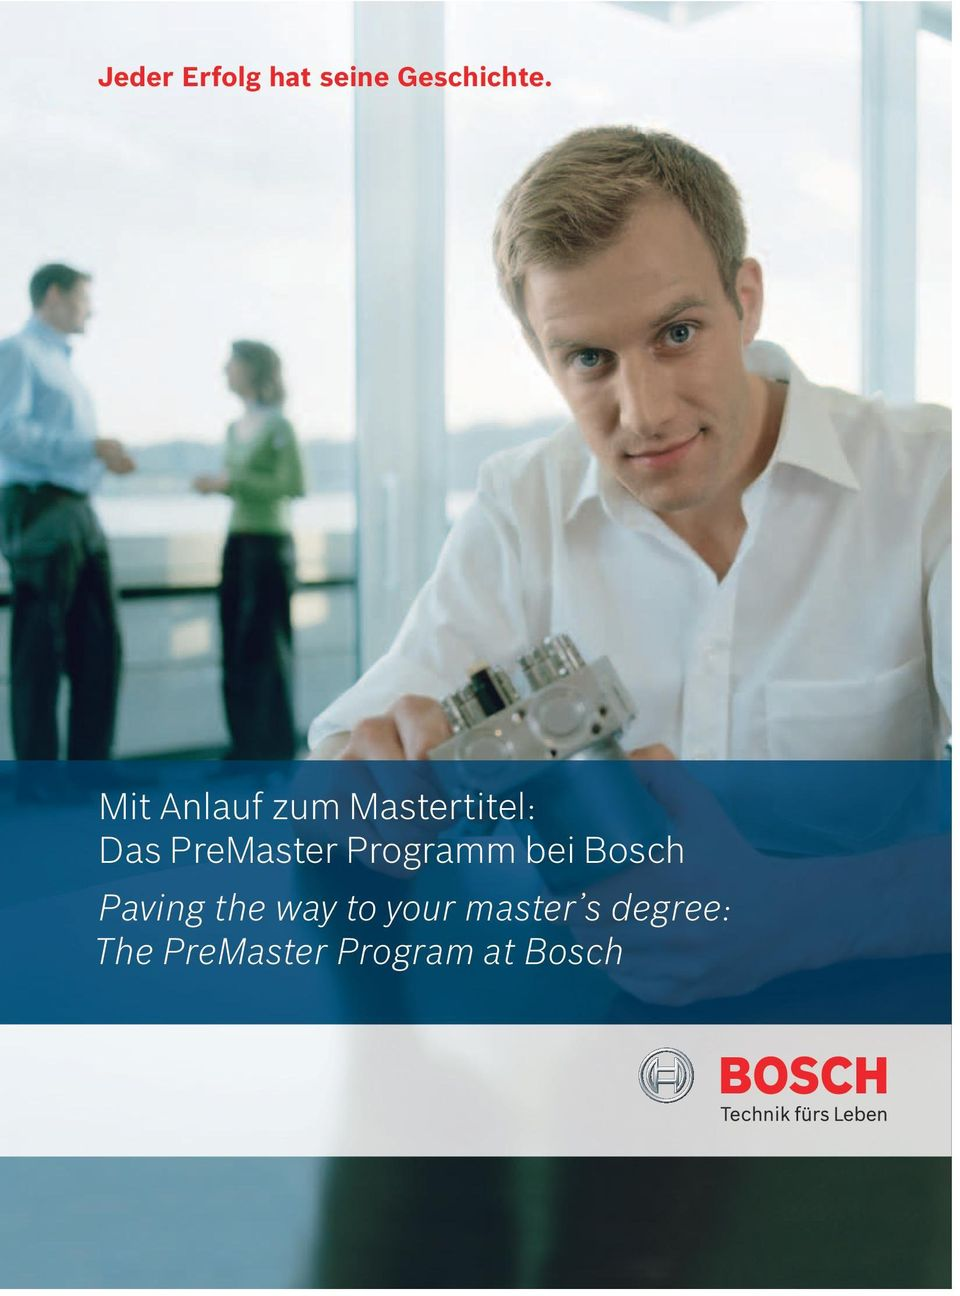 Programm bei Bosch Paving the way to your